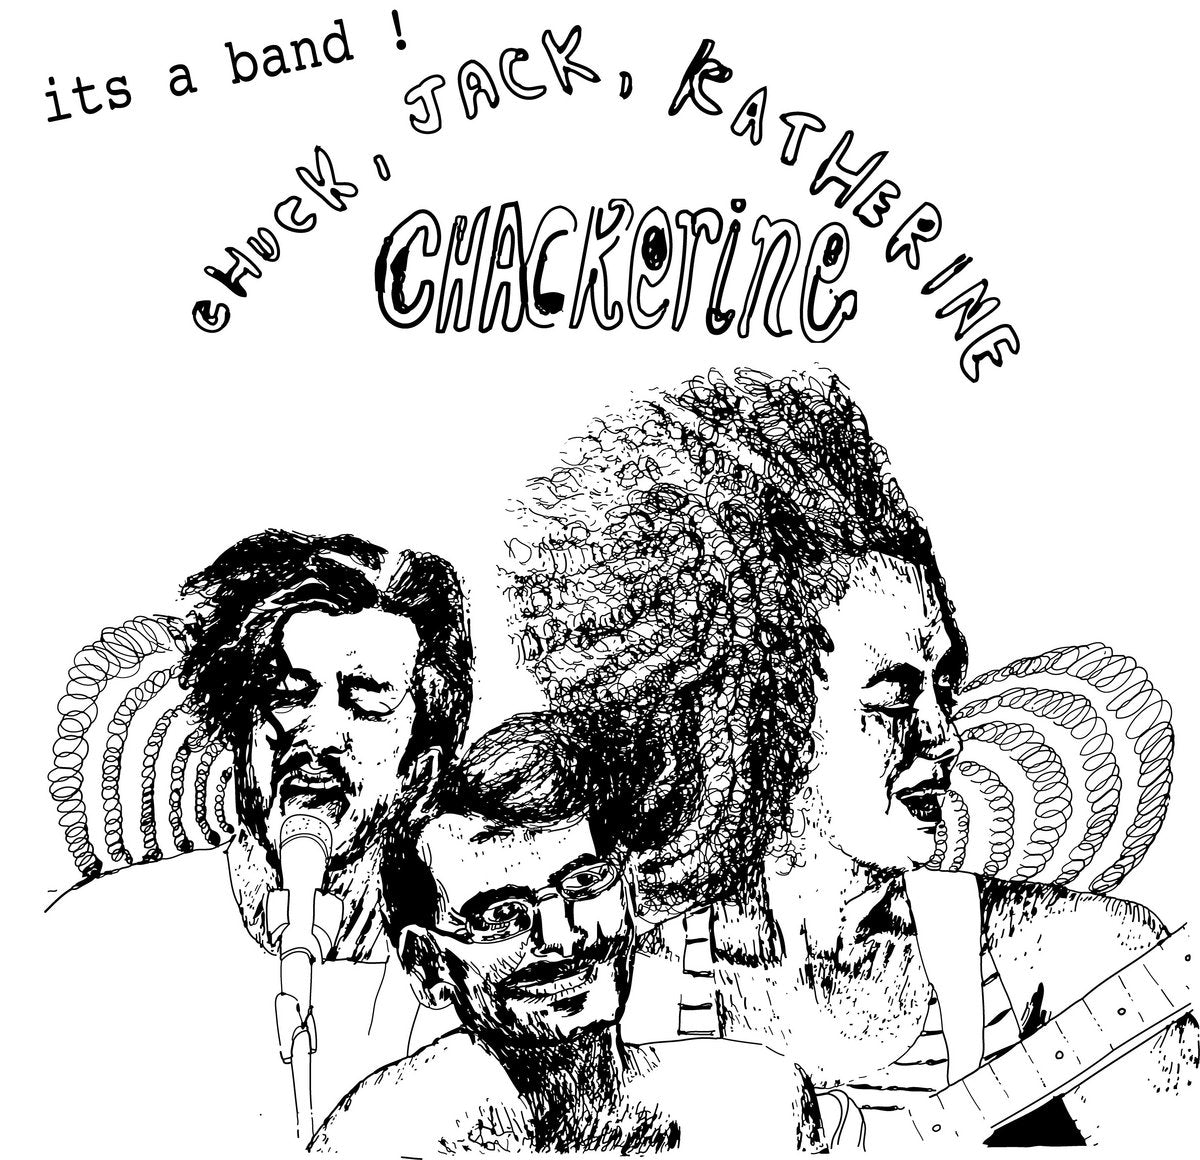 Chackerine - Its A Band!